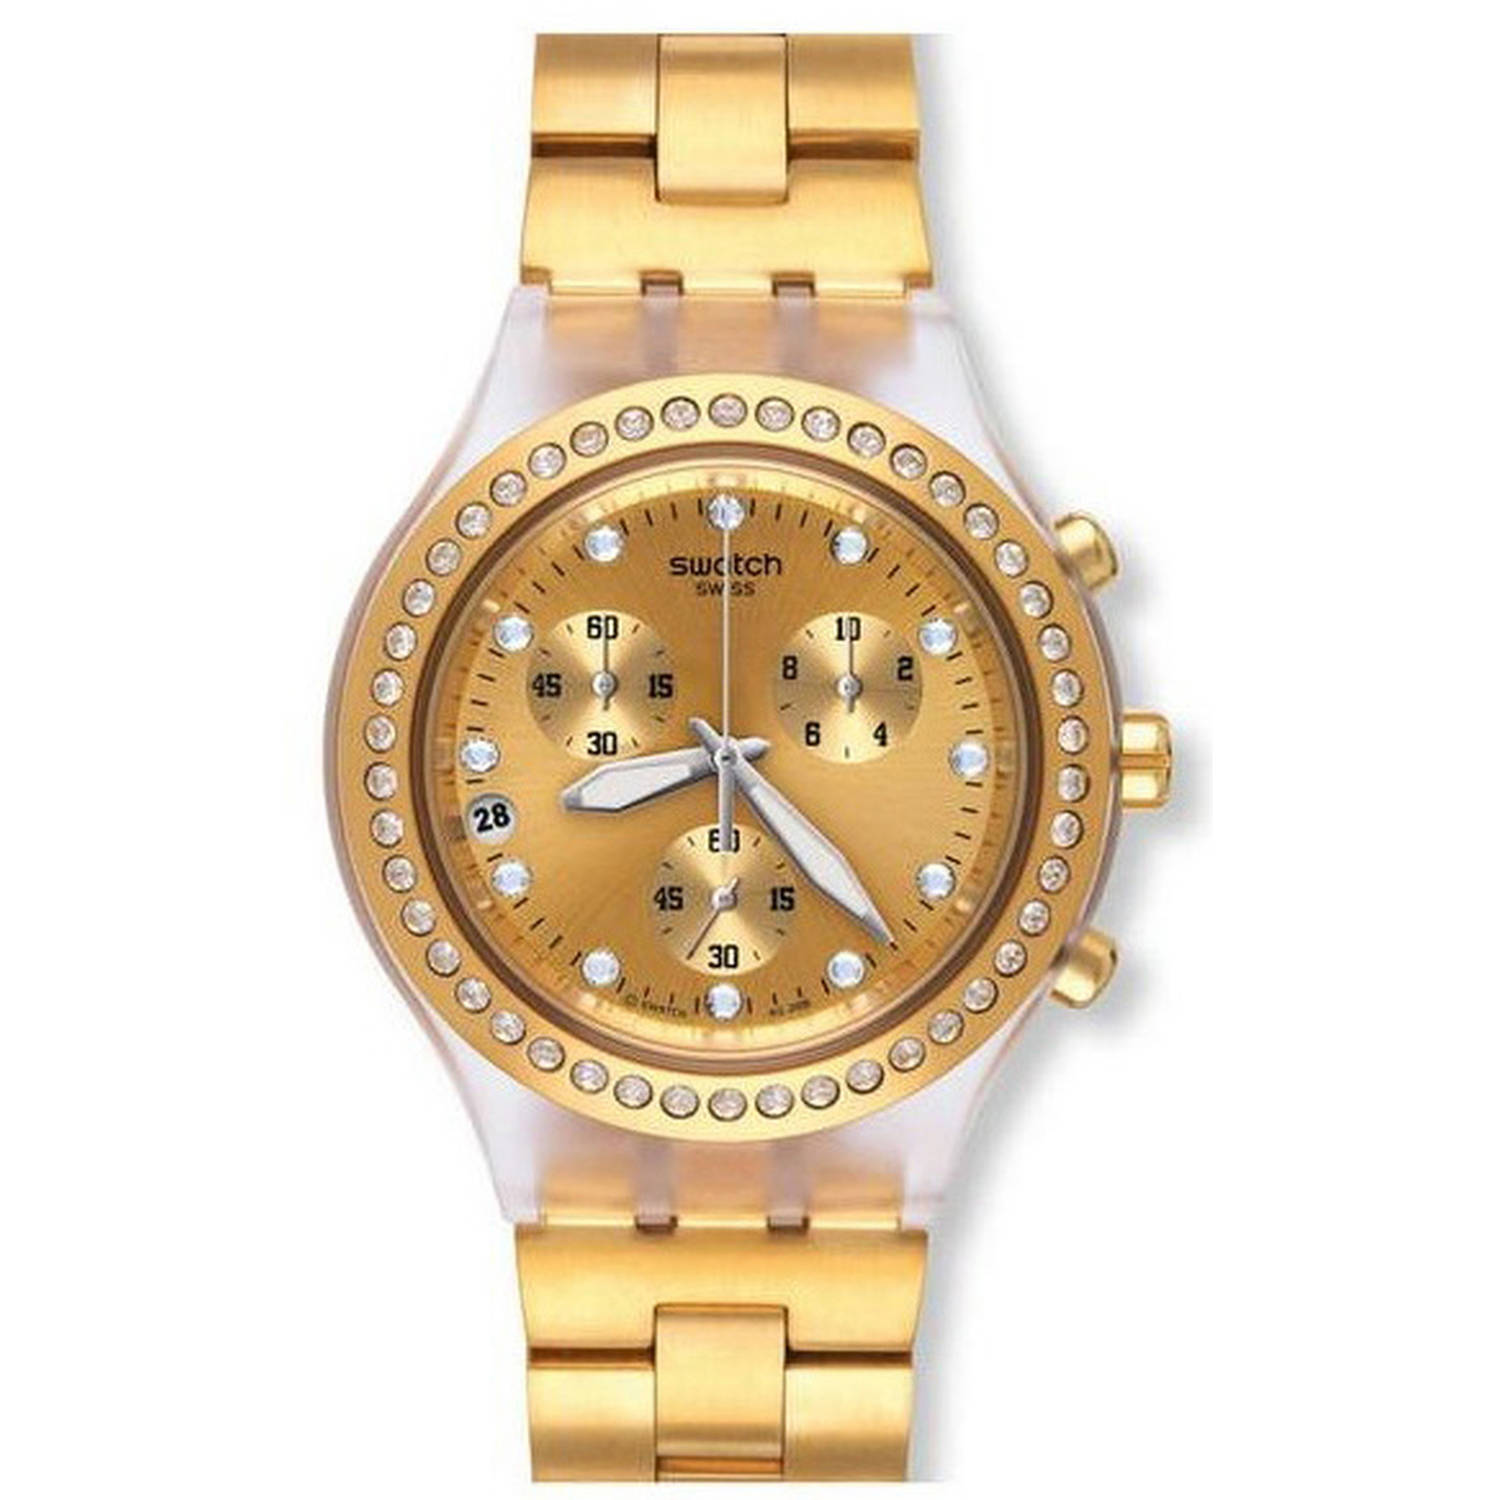 Swatch One Thousand and One Chronograph Women's Watch by Swatch